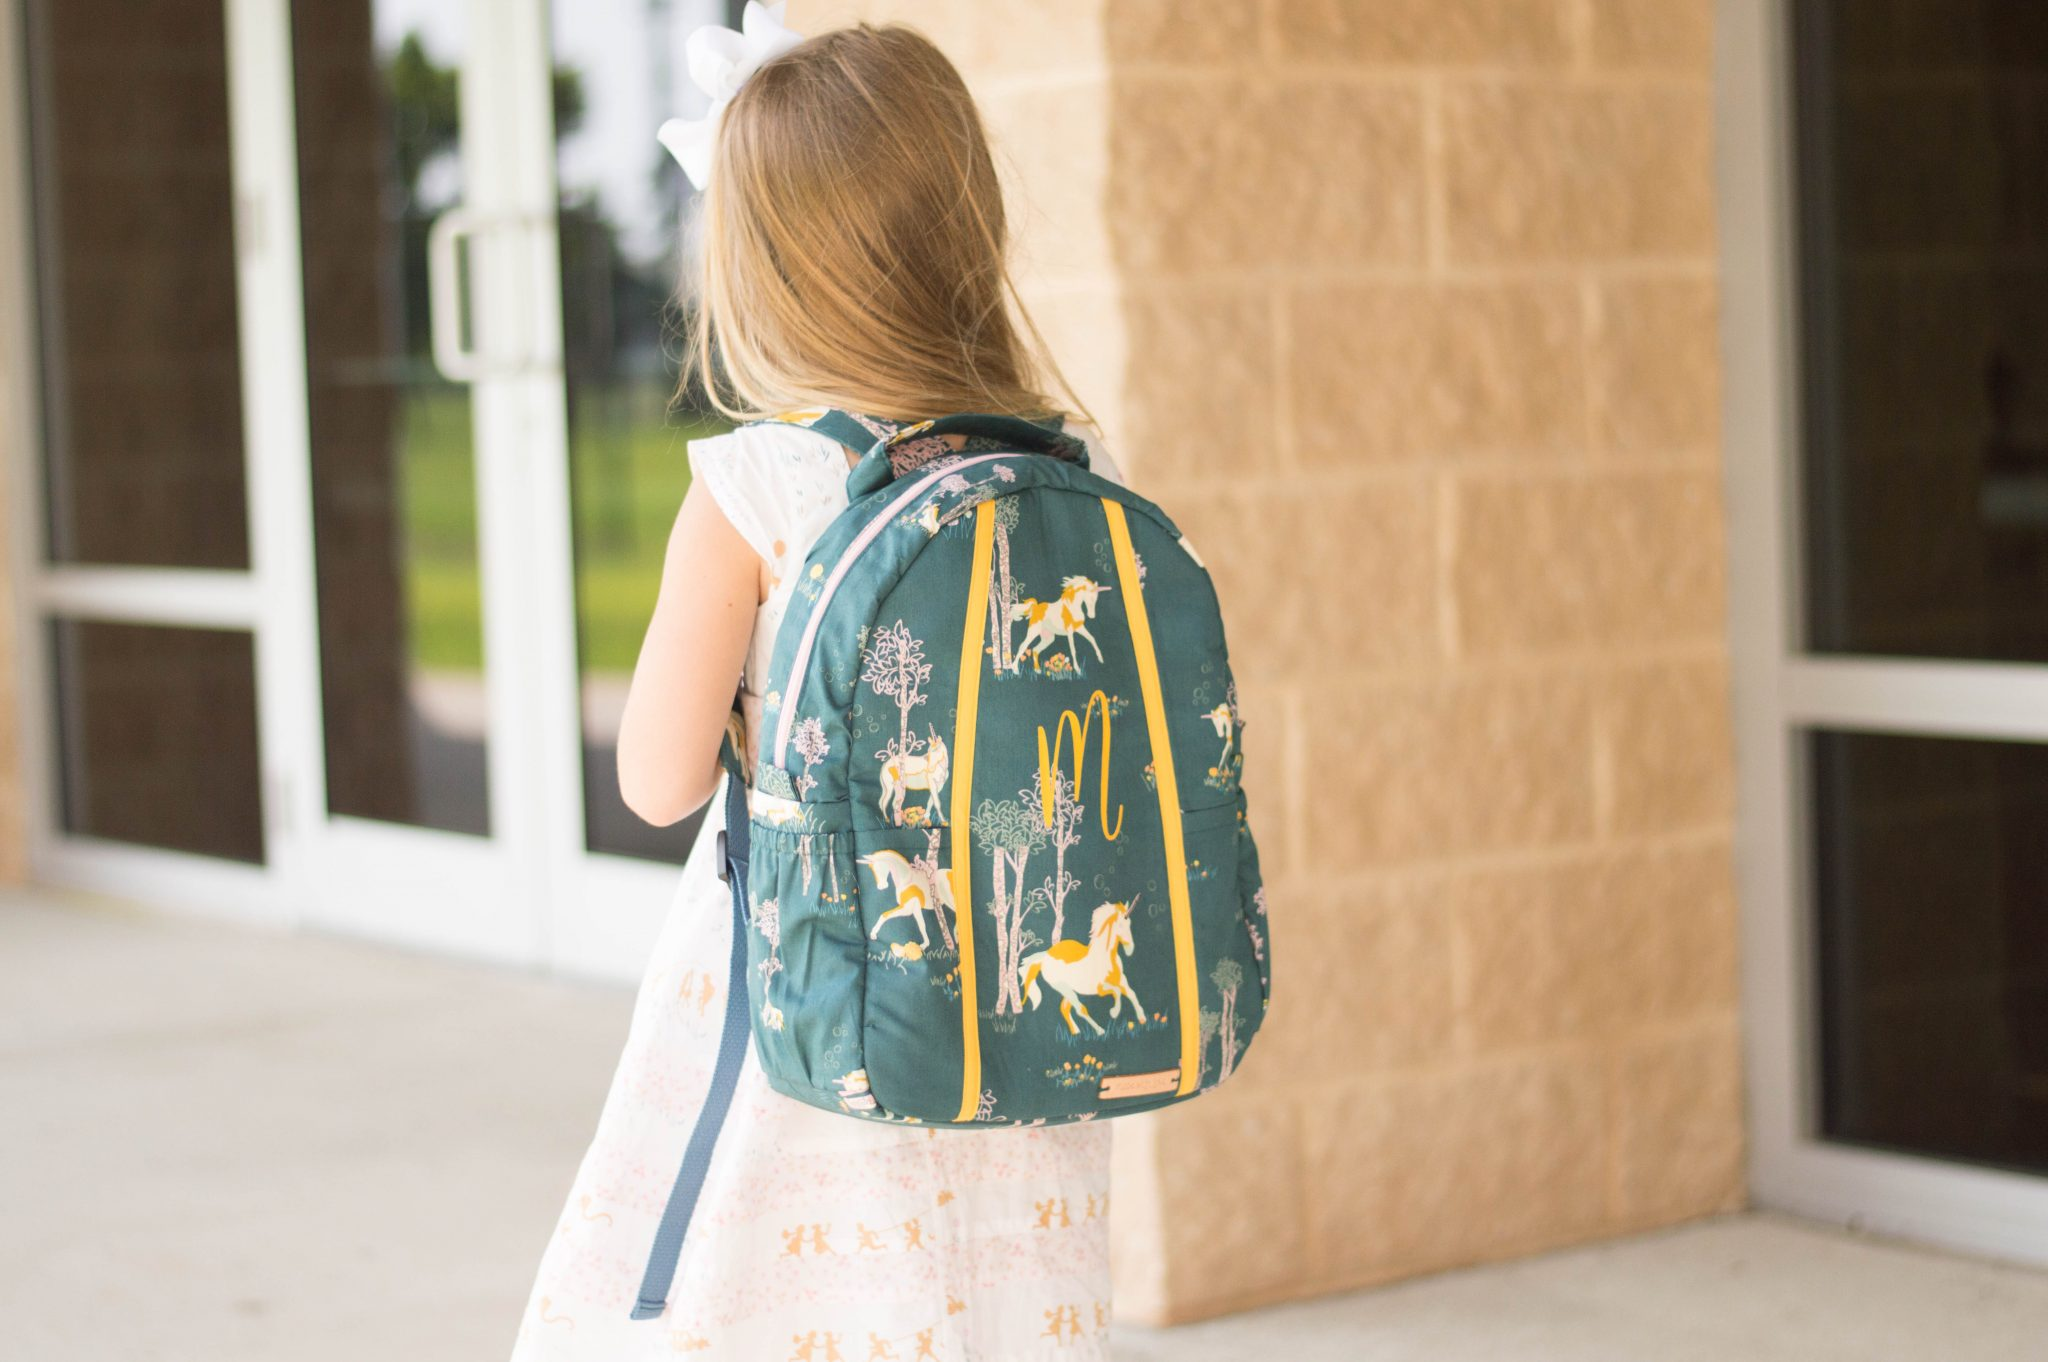 Sunflower Seams | Back to School with Silhouette, Iron On, Heat Transfer Vinyl, HTV, Silhouette Cameo, Back to School, Spring, Summer, Fall, Winter, DIY, Cricut Explore Air, SLPco, Simple Life Pattern Company, Ava, Pleated Dress